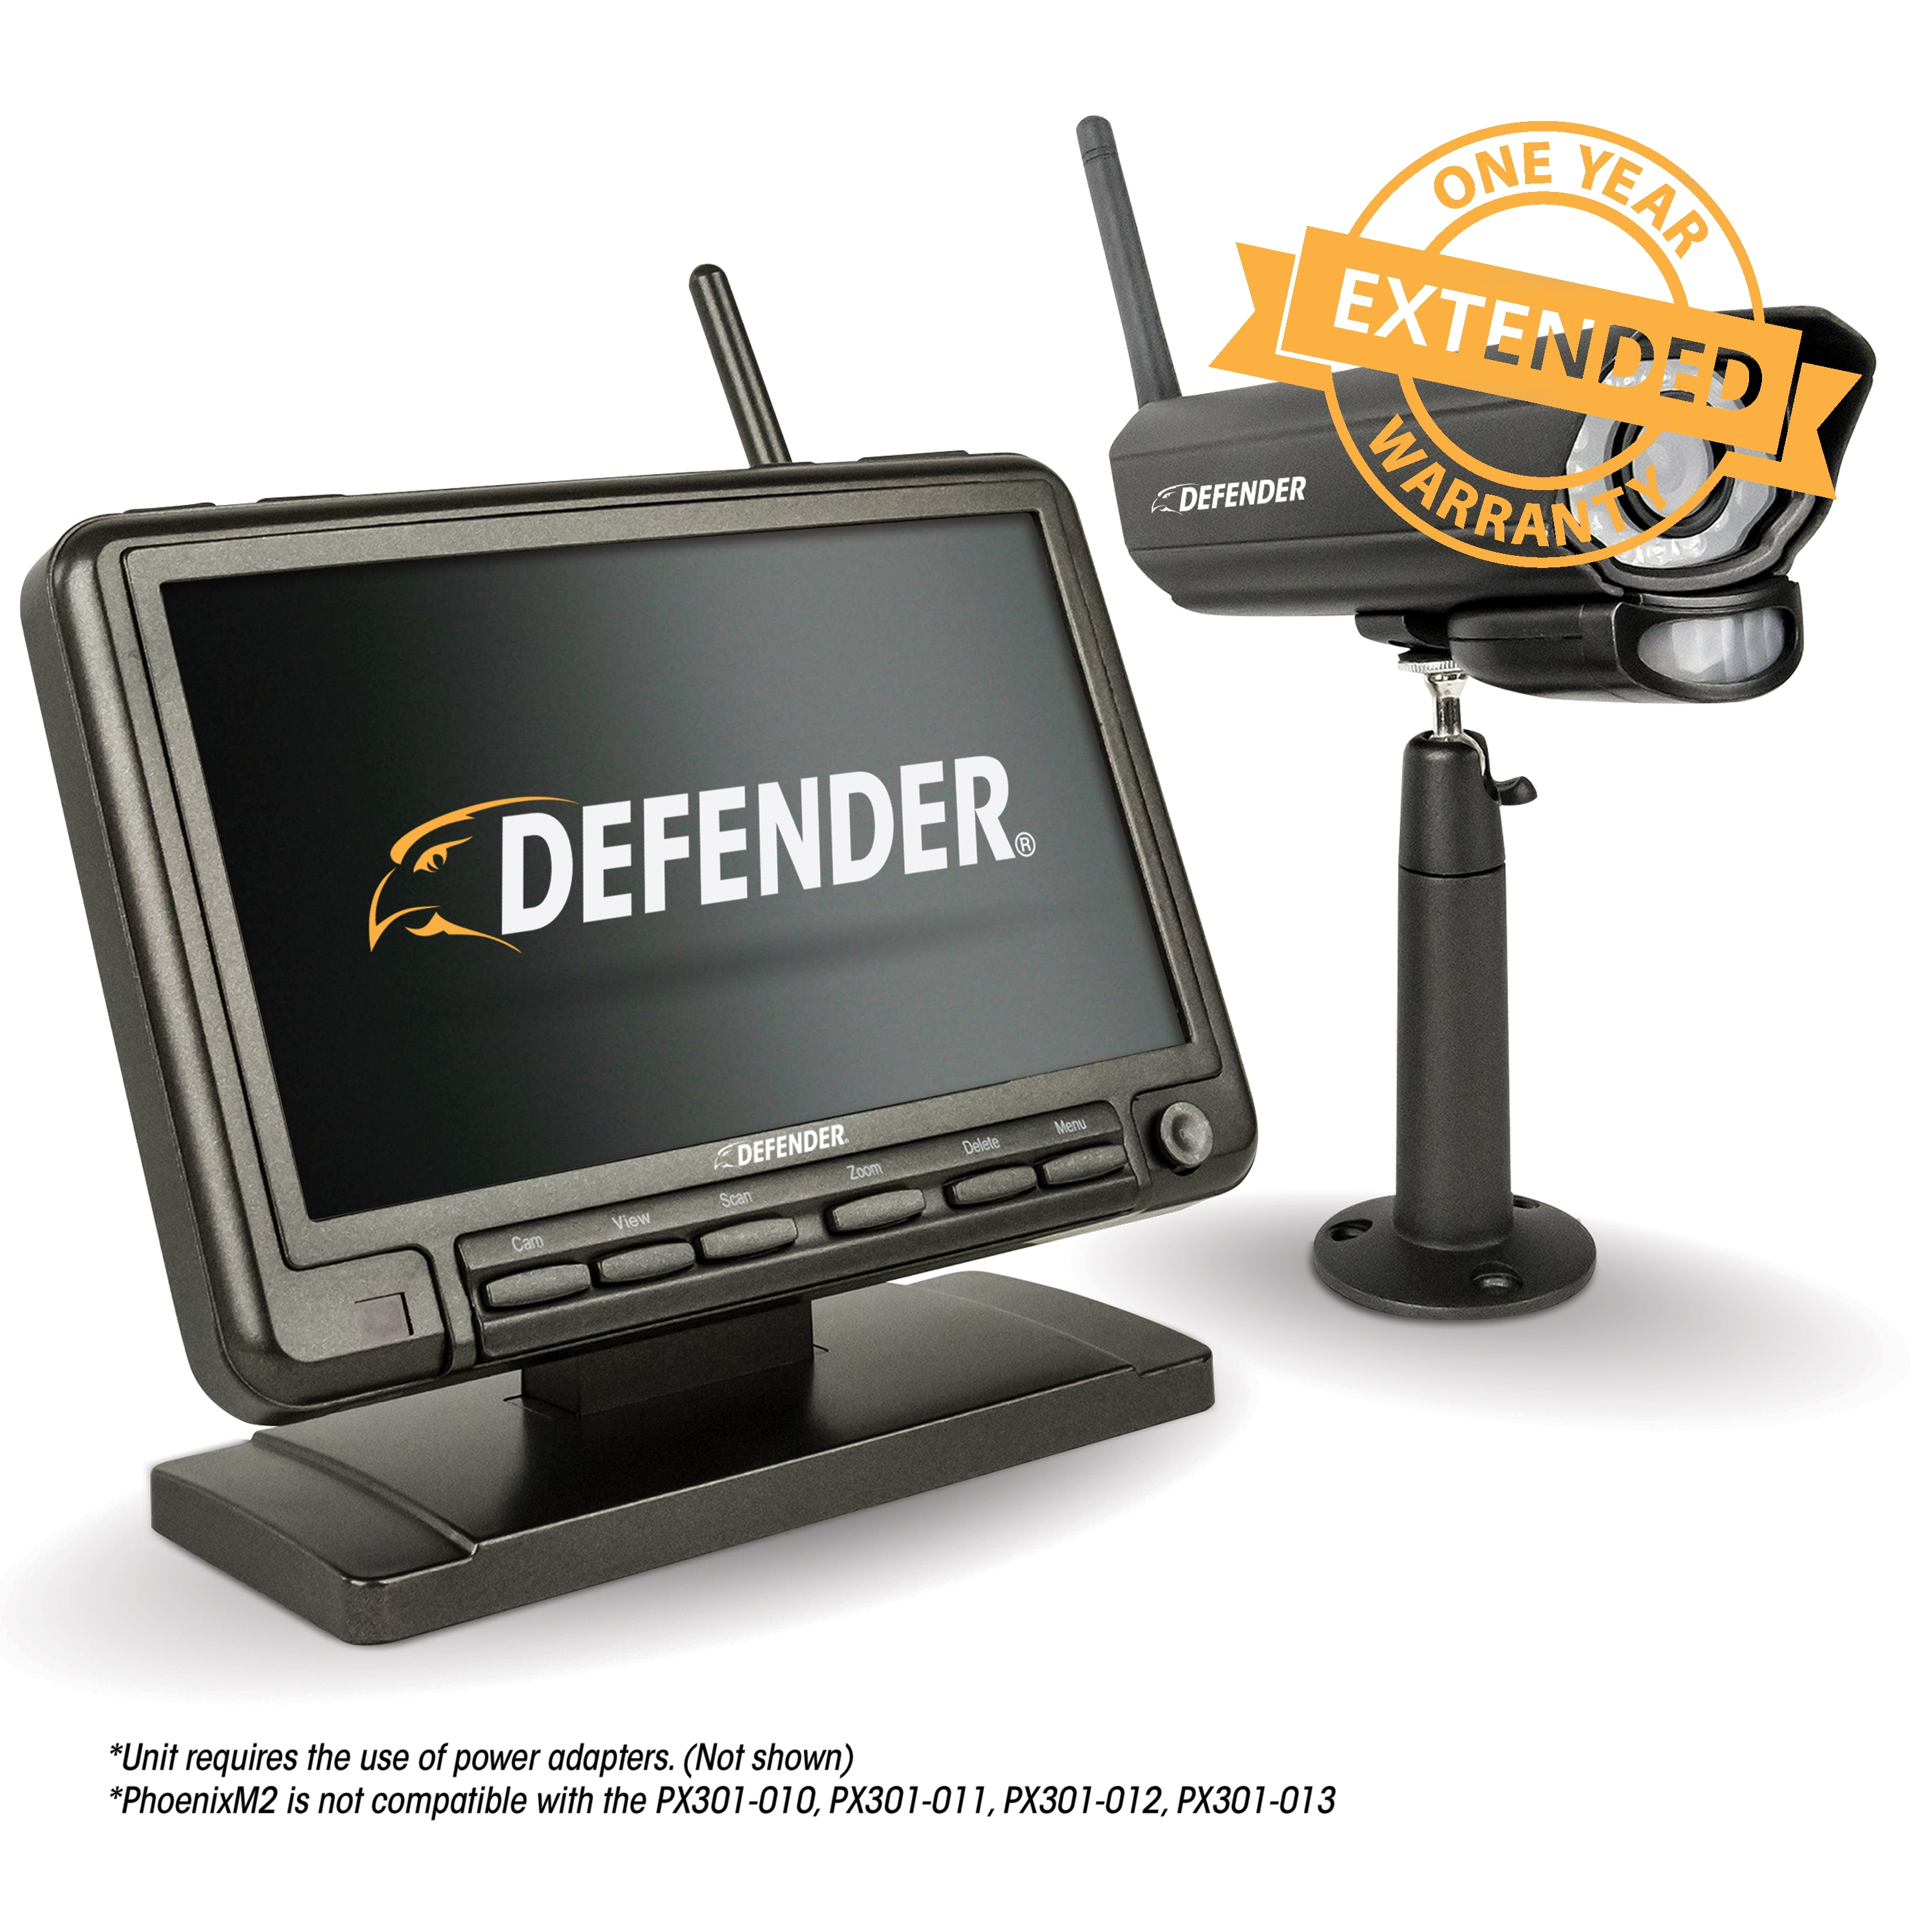 1 Year Extended Warranty for PhoenixM2 Defender Security System